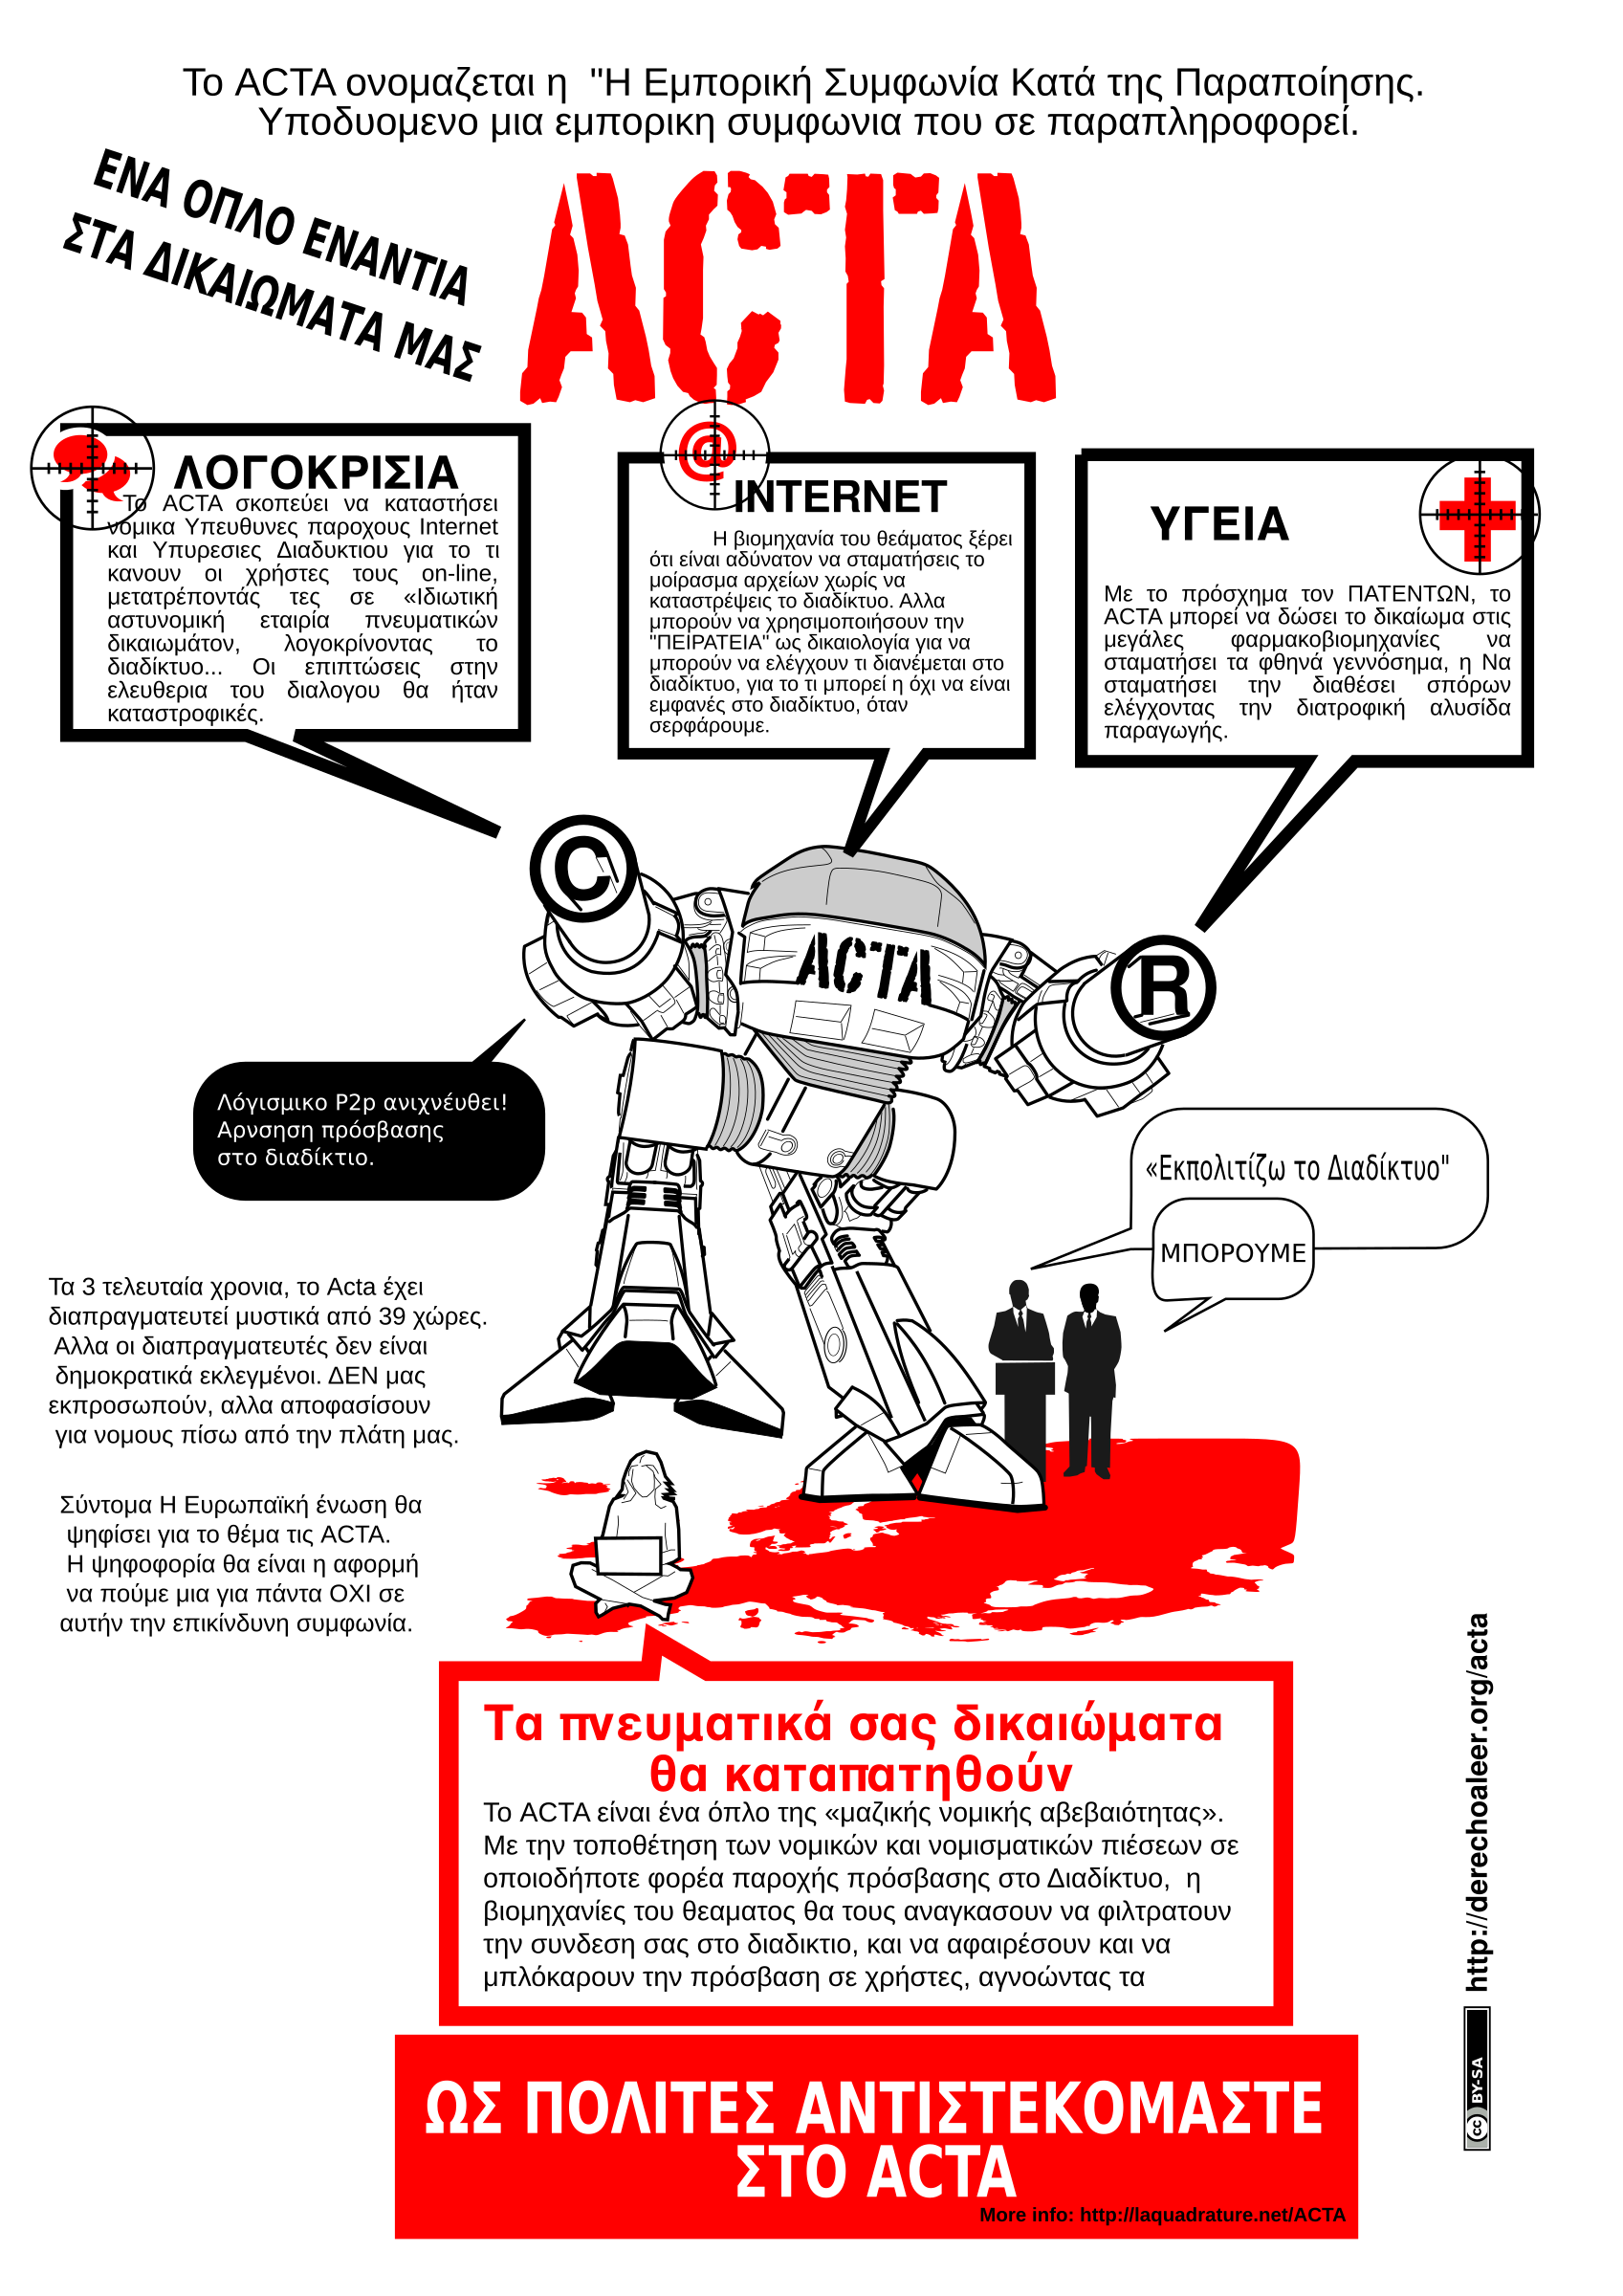 ACTA STOP GREEK by Agiofws